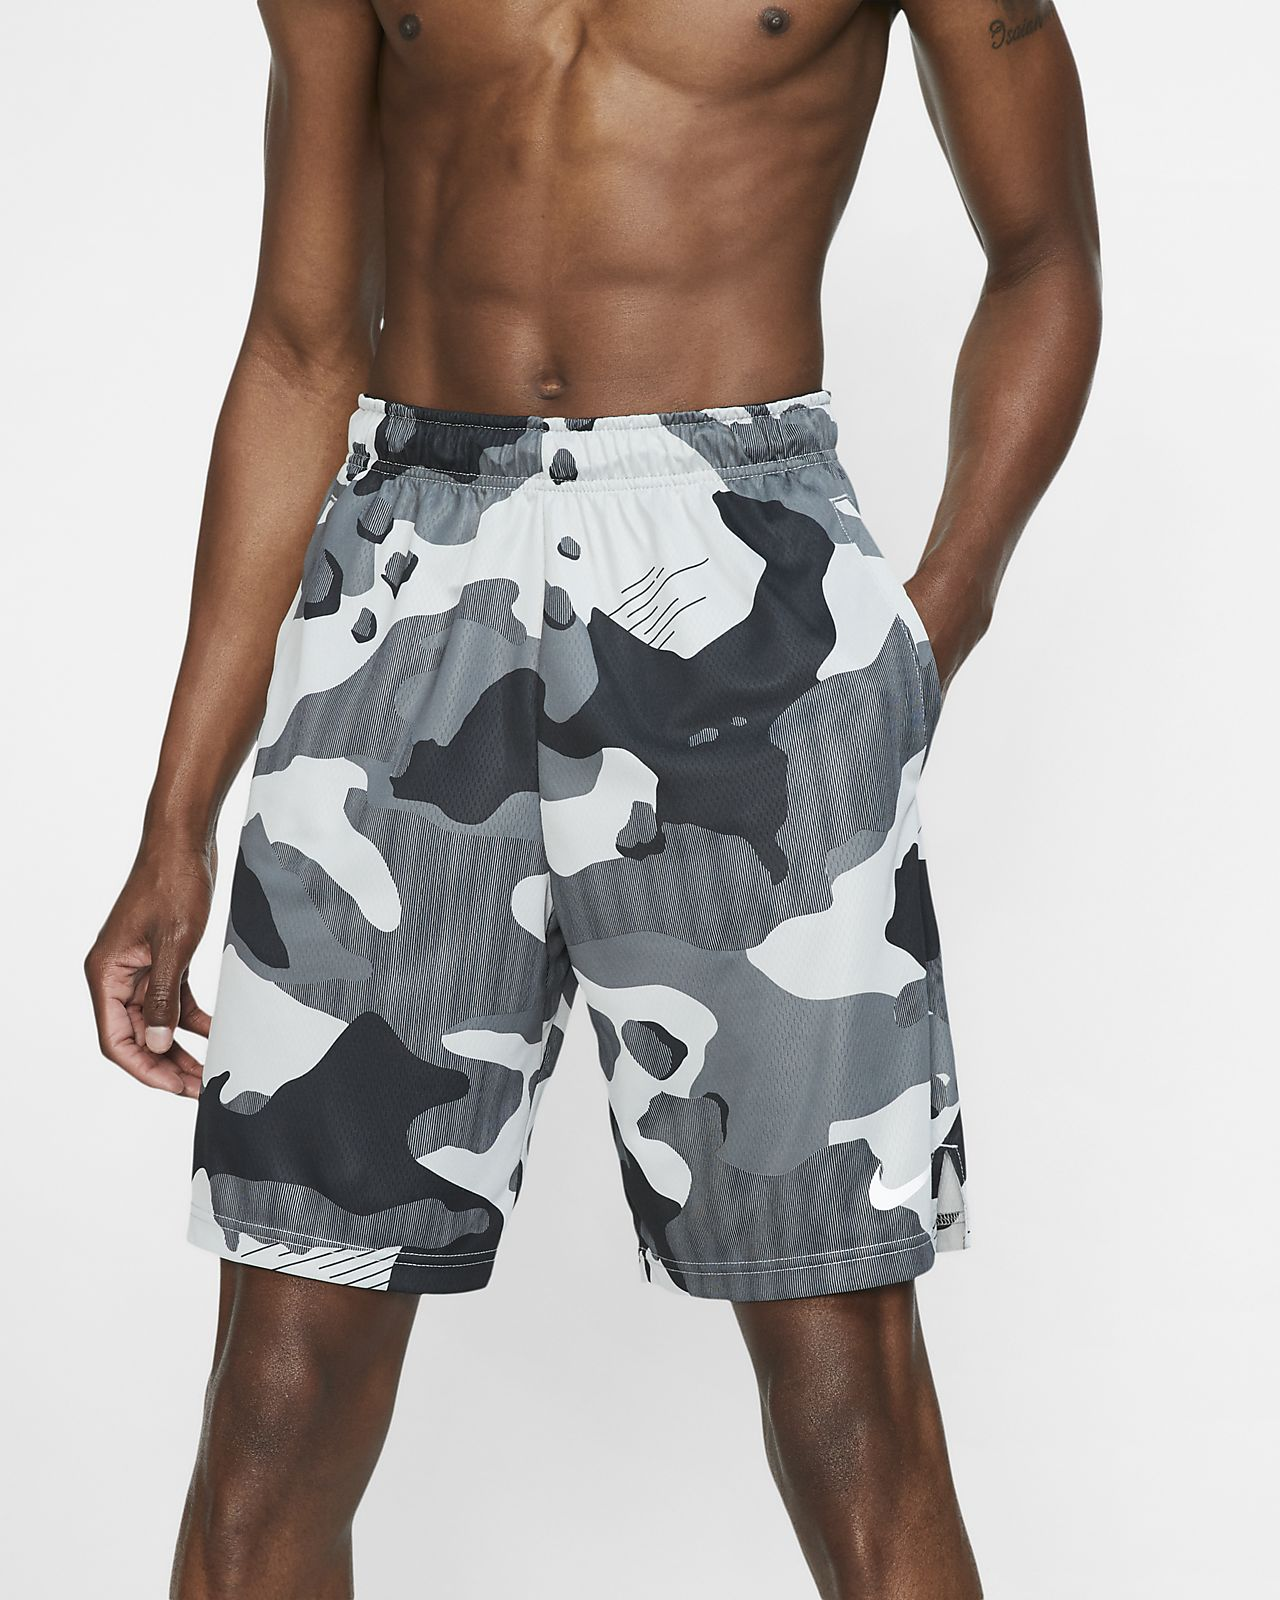 Nike Dri-FIT Trainingsshorts met camouflageprint voor heren